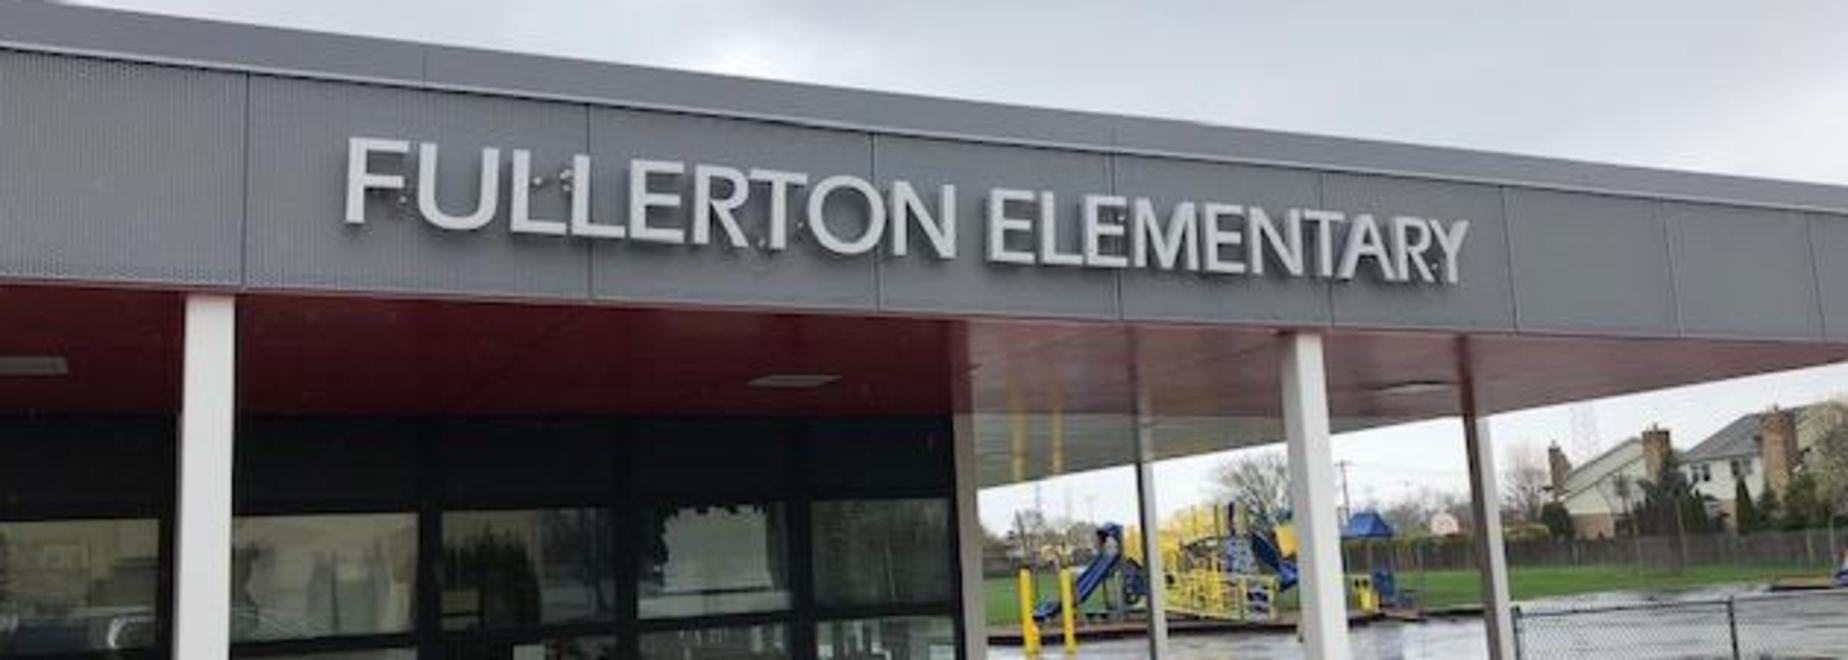 Fullerton Elementary School -  Home of the Lions!